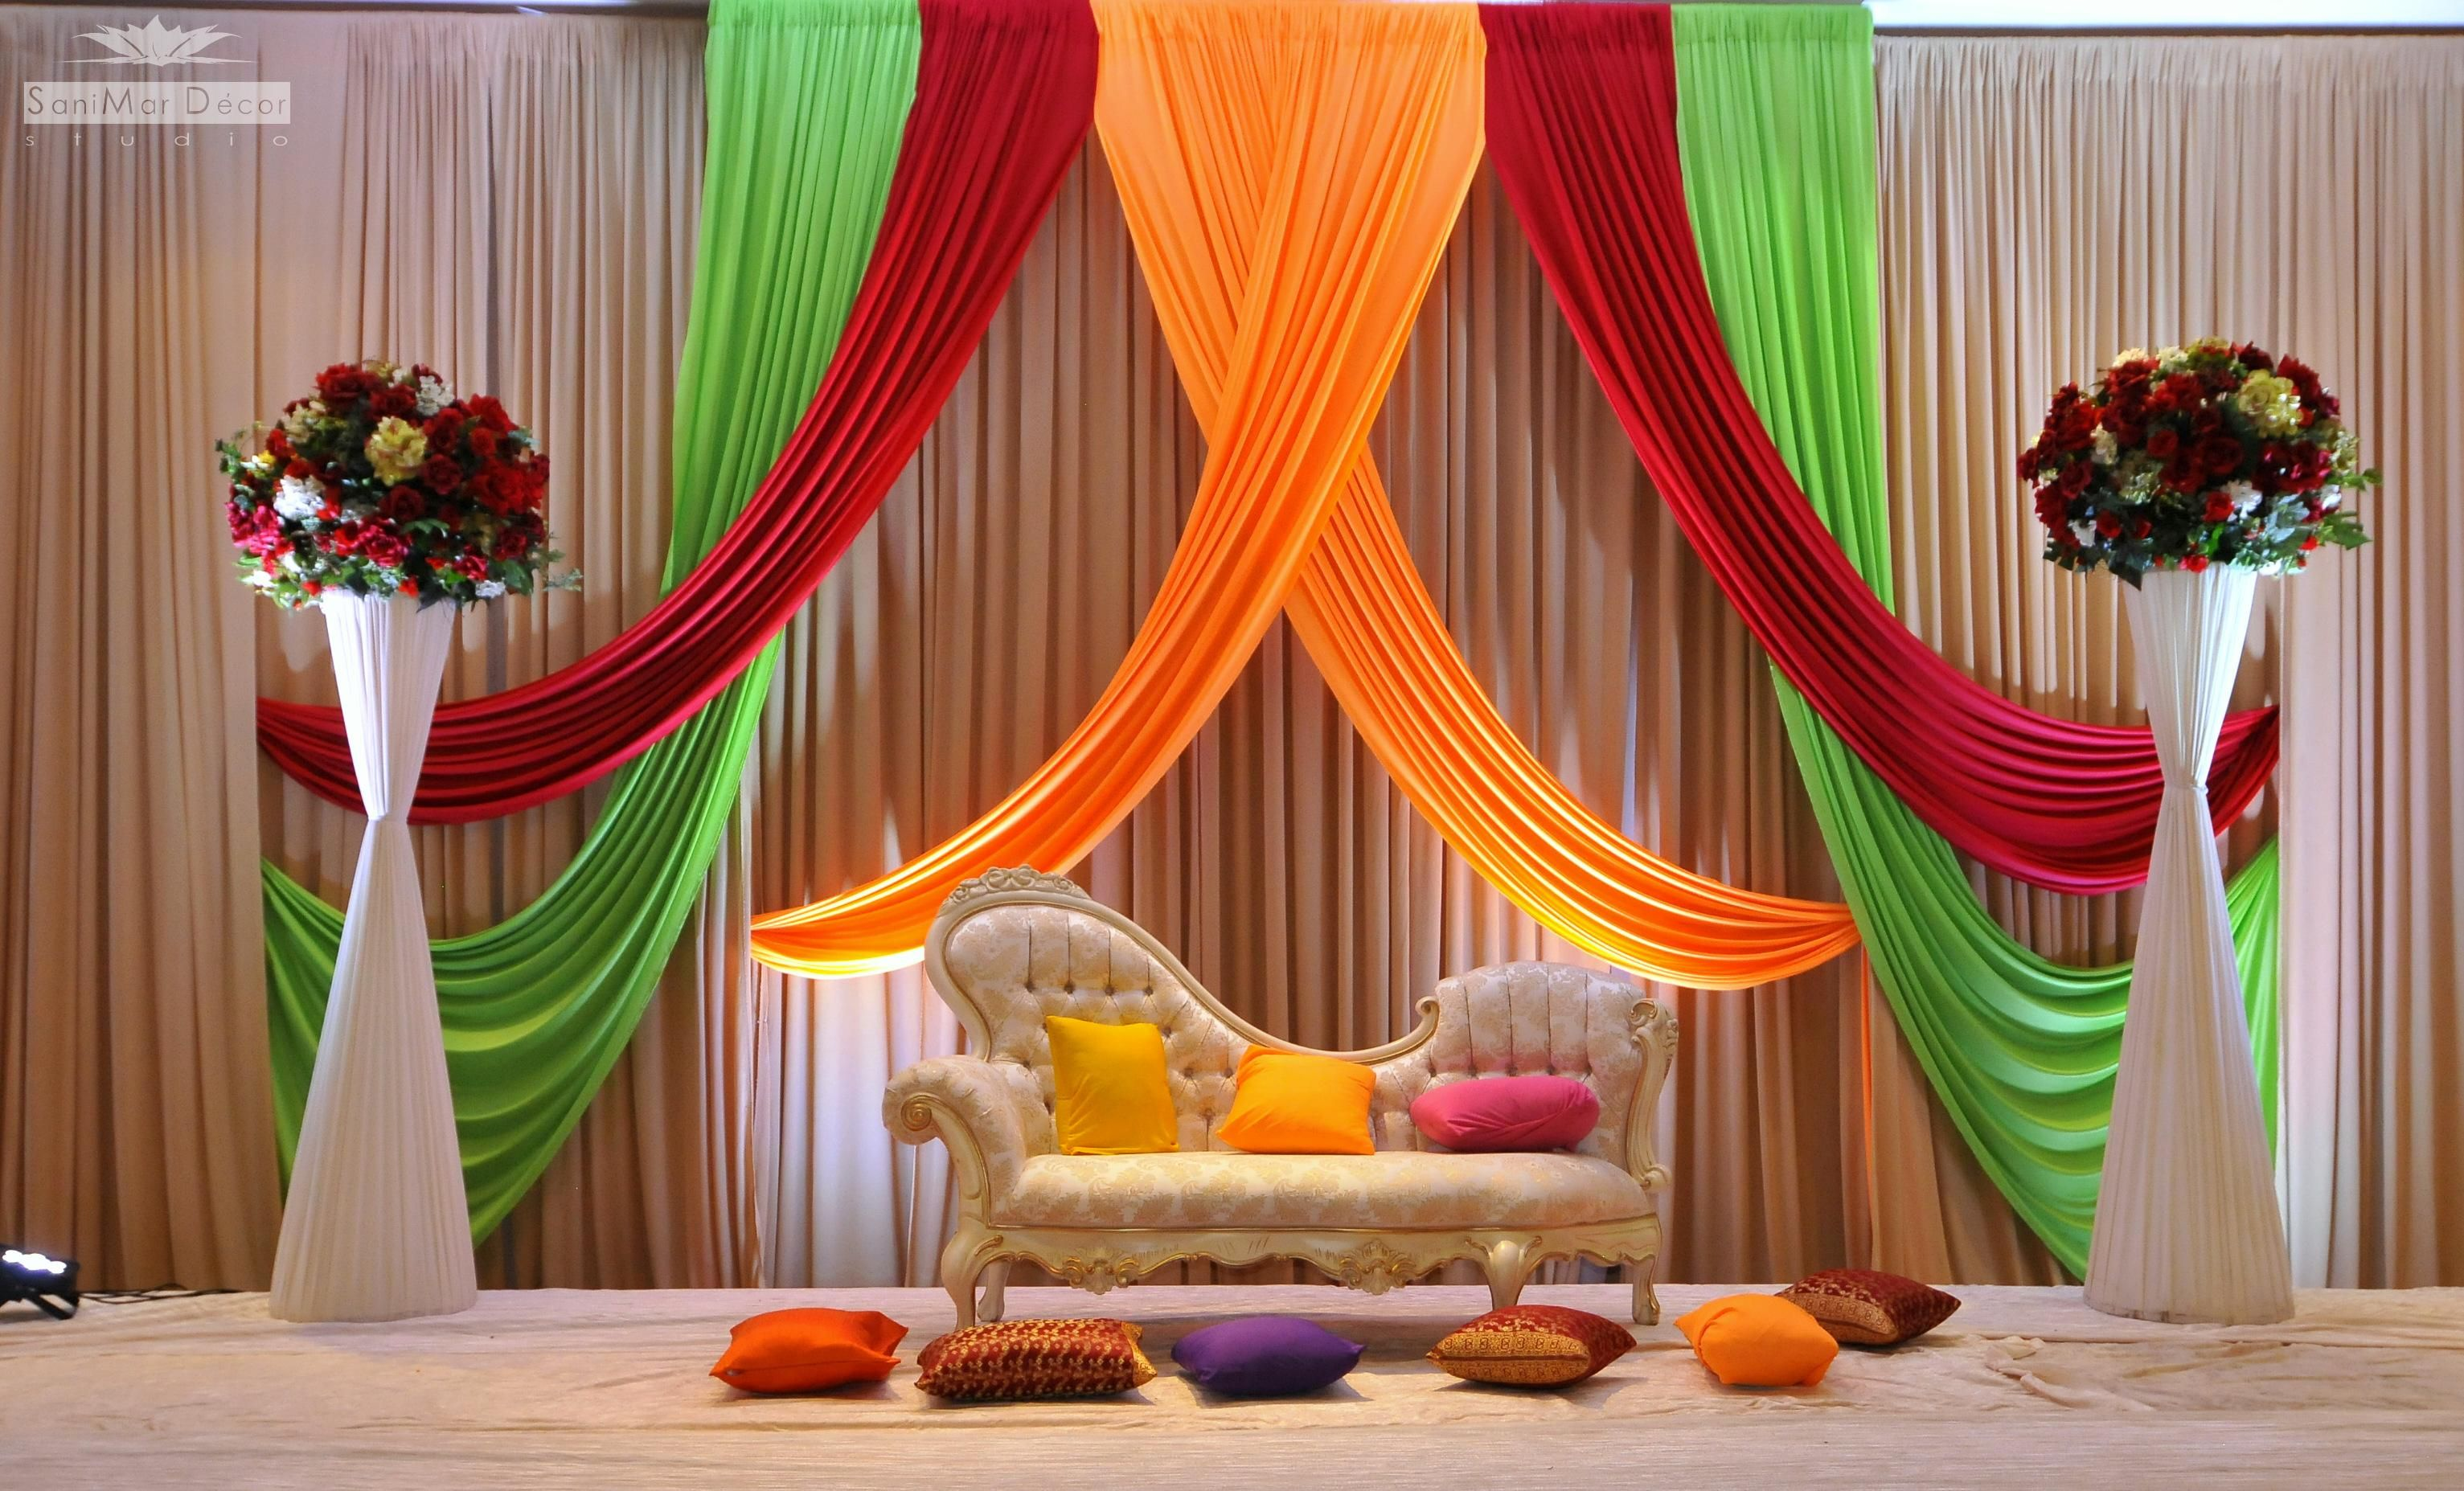 Wedding Stage Decoration Wedding Decorations Natural Decorations In Image List Top Decoration